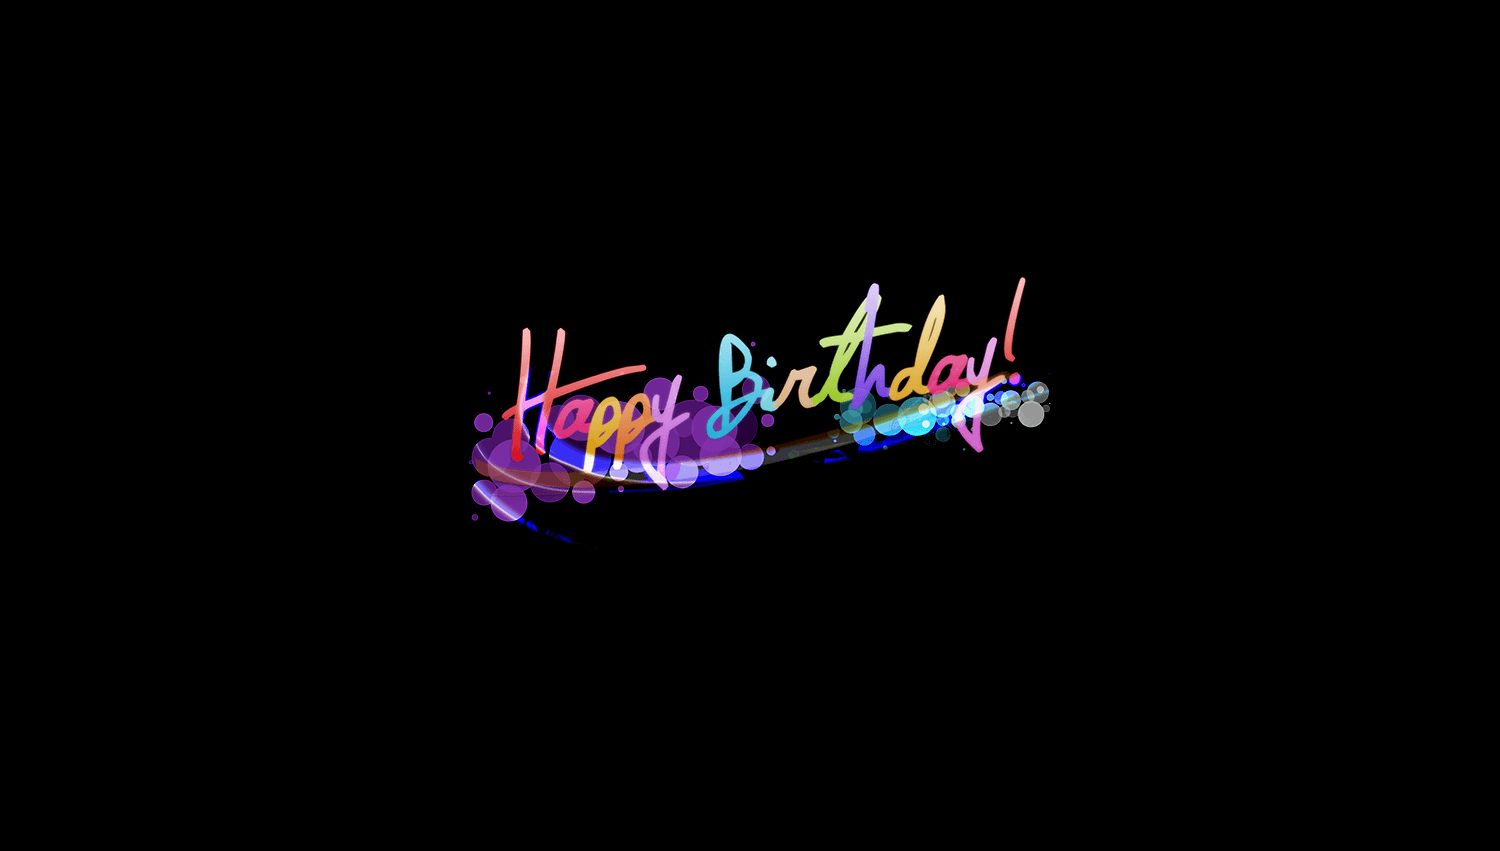 Wallpapers Of Happy Birthday Wallpaper Cave Happy Birthday Wishes For On Wall